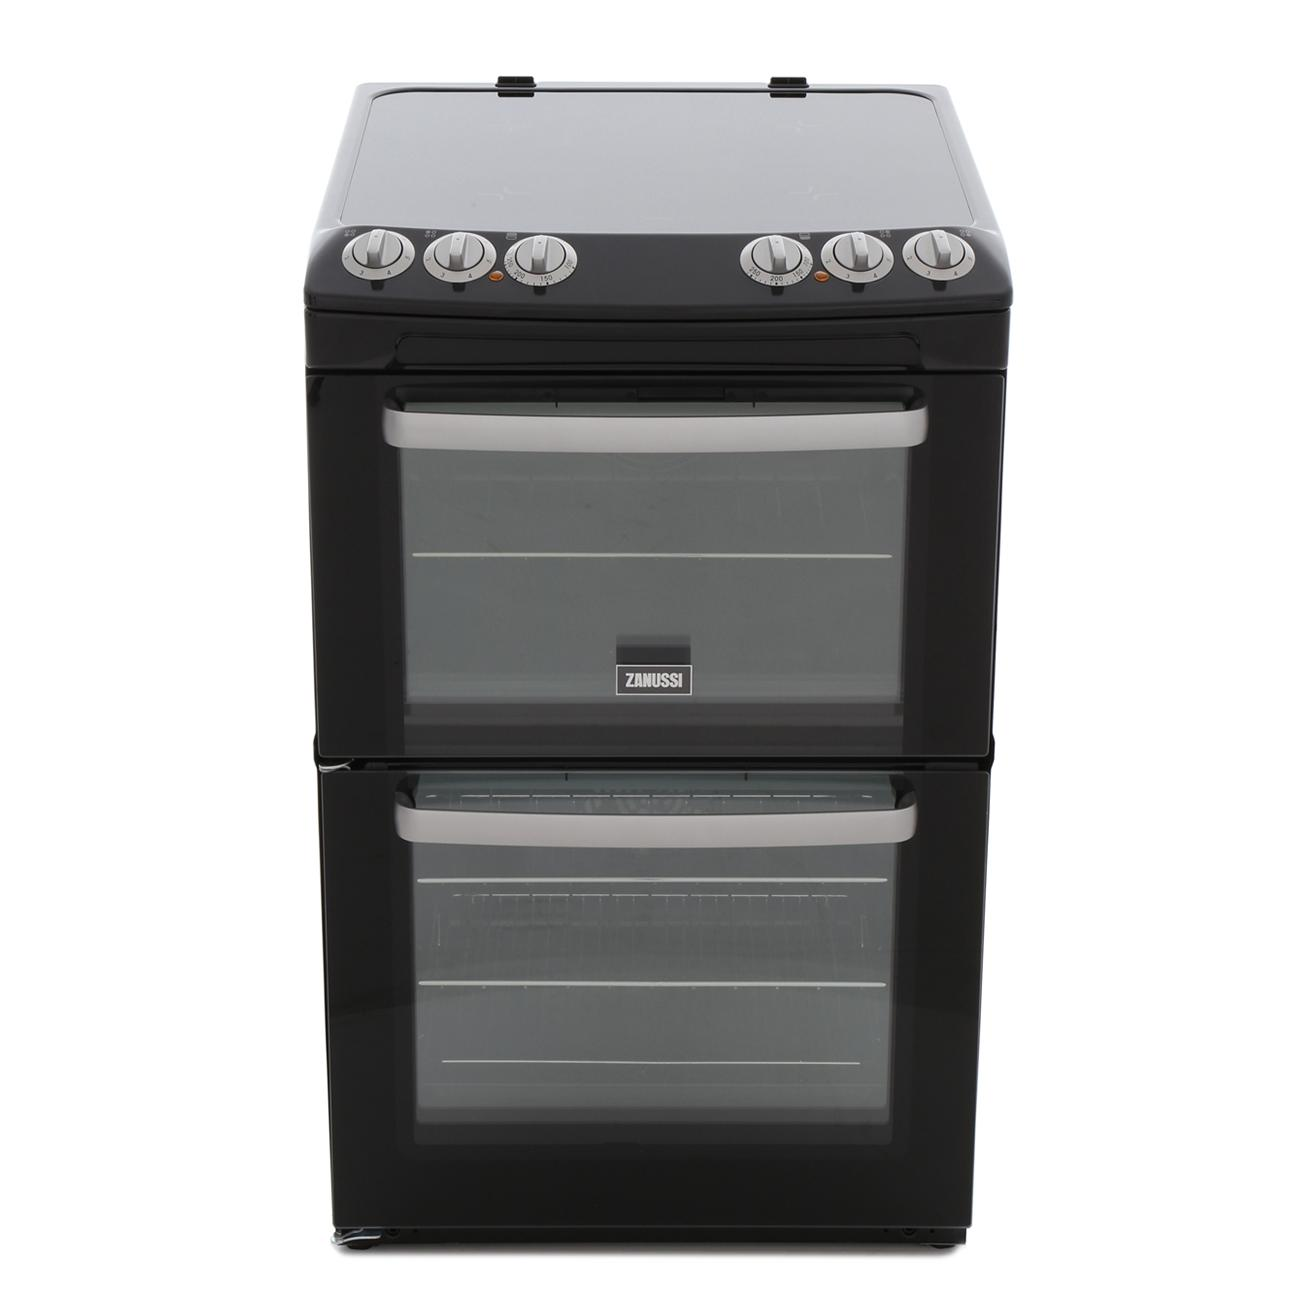 Zanussi ZCV554MN Ceramic Electric Cooker with Double Oven